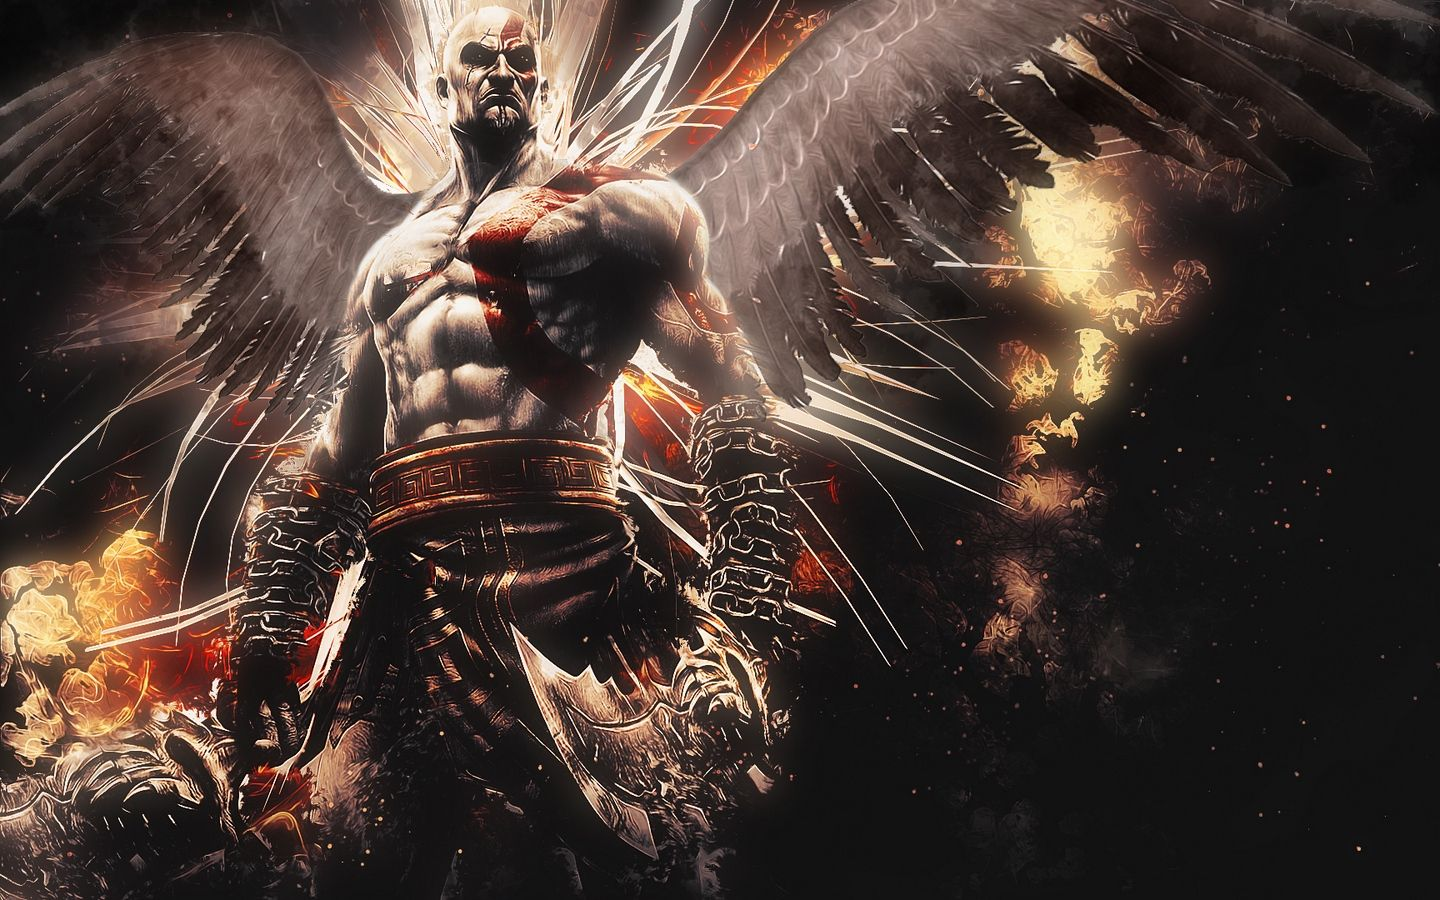 God Of War Wallpaper Desktop Background Firefox Wallpaper Free